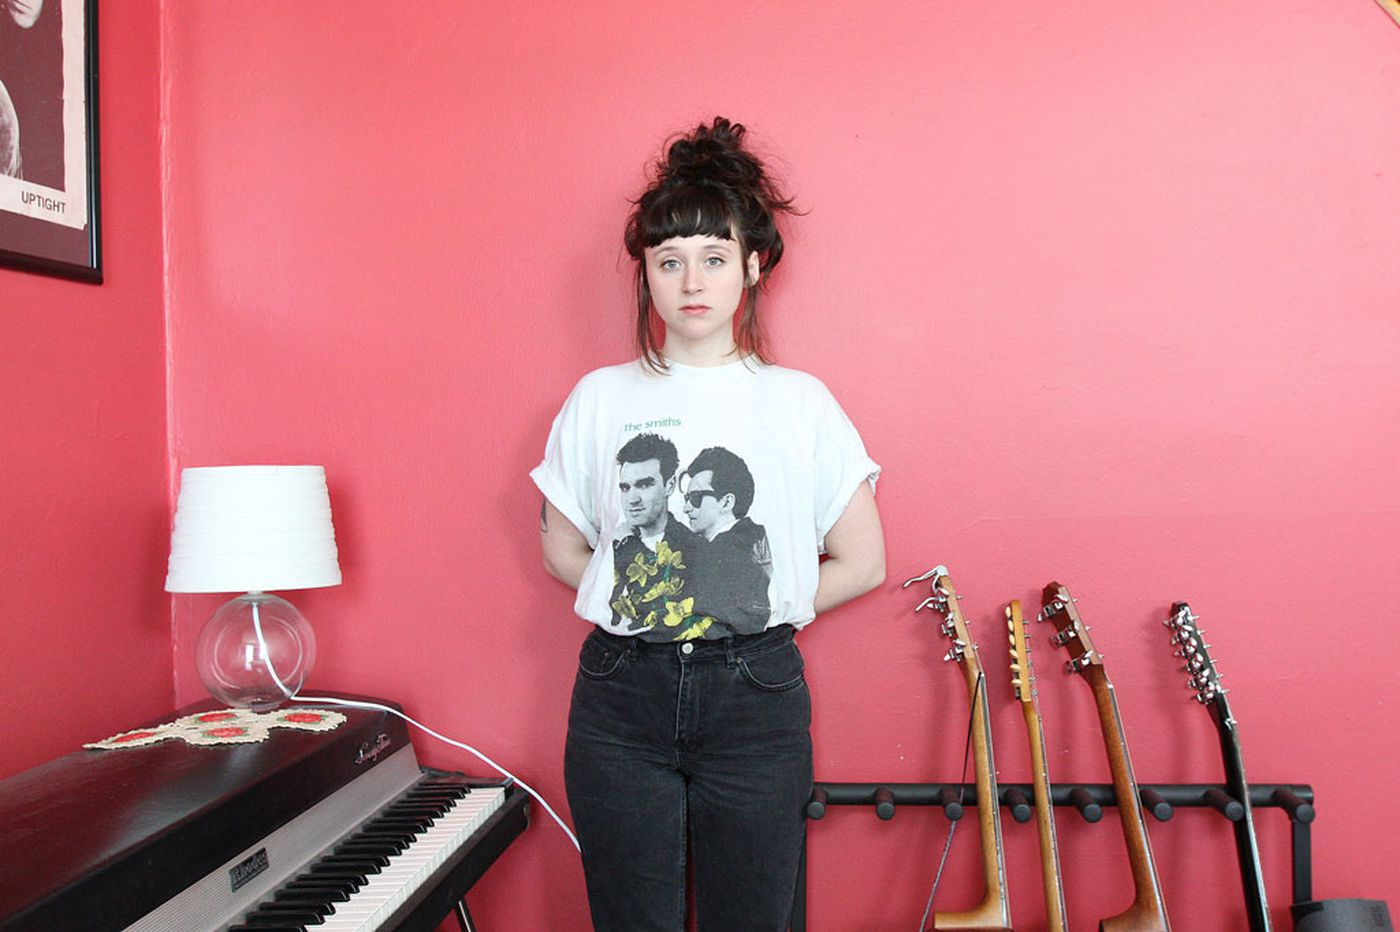 Waxahatchee: Living the passionate, indie-rock reality in Philly